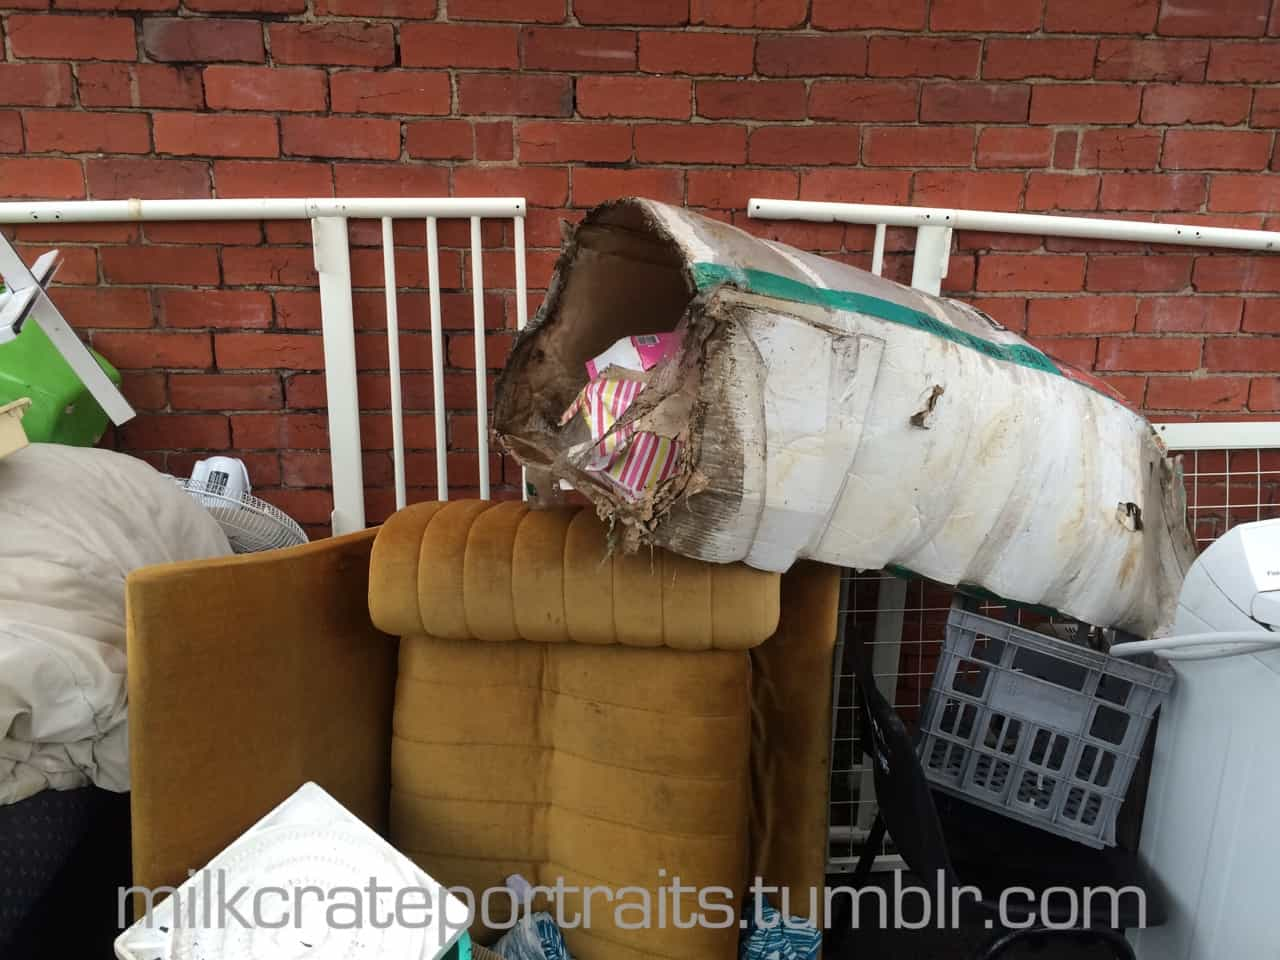 Dumped with the rubbish